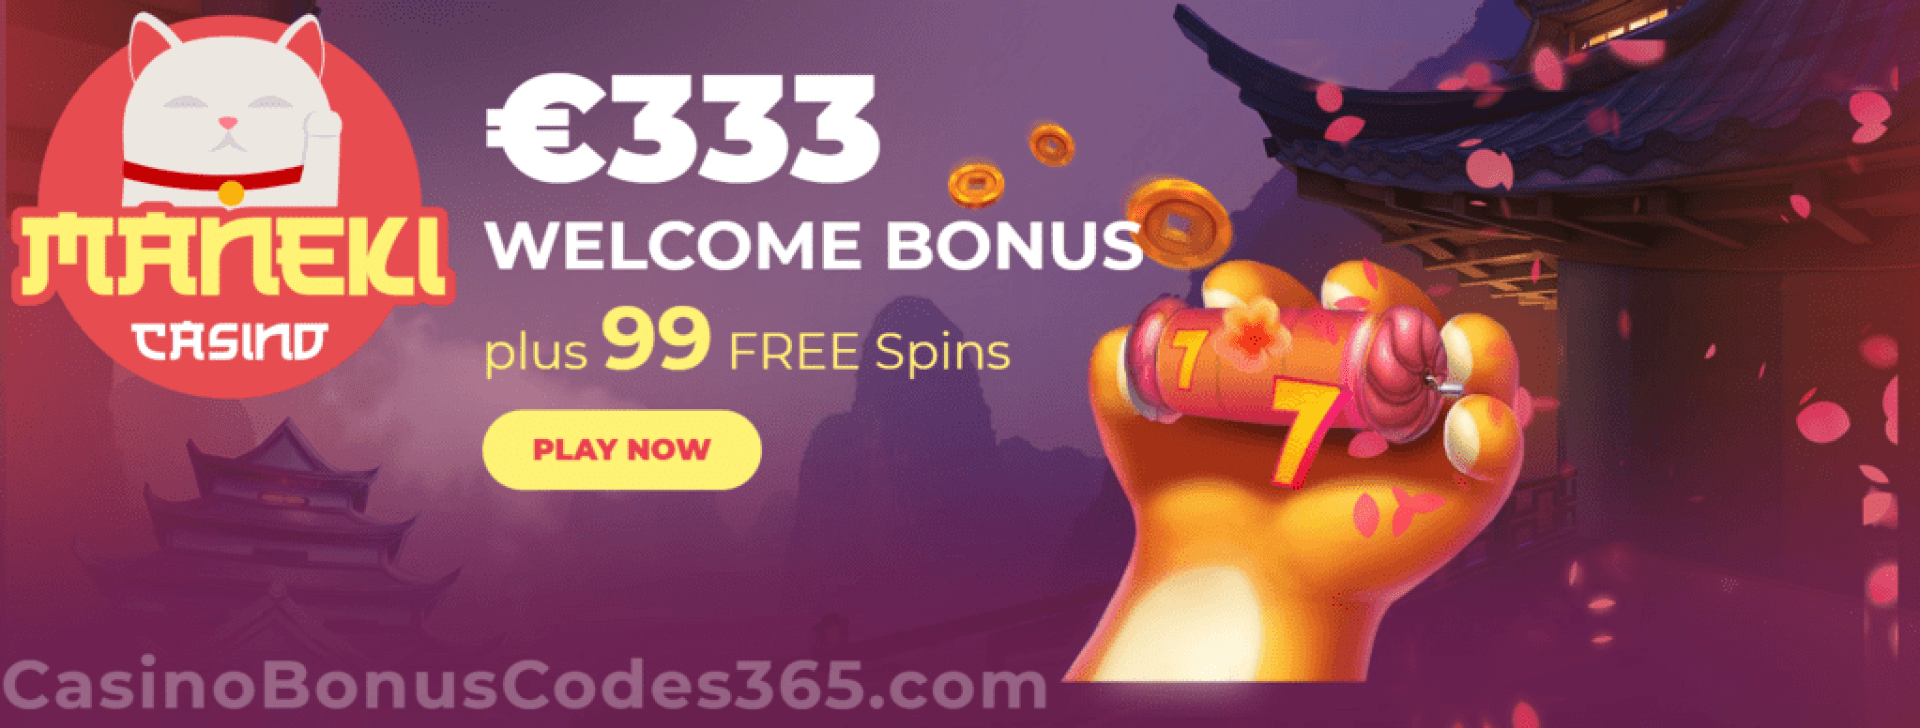 Maneki Casino €333 Bonus plus 99 FREE Spins Welcome Package